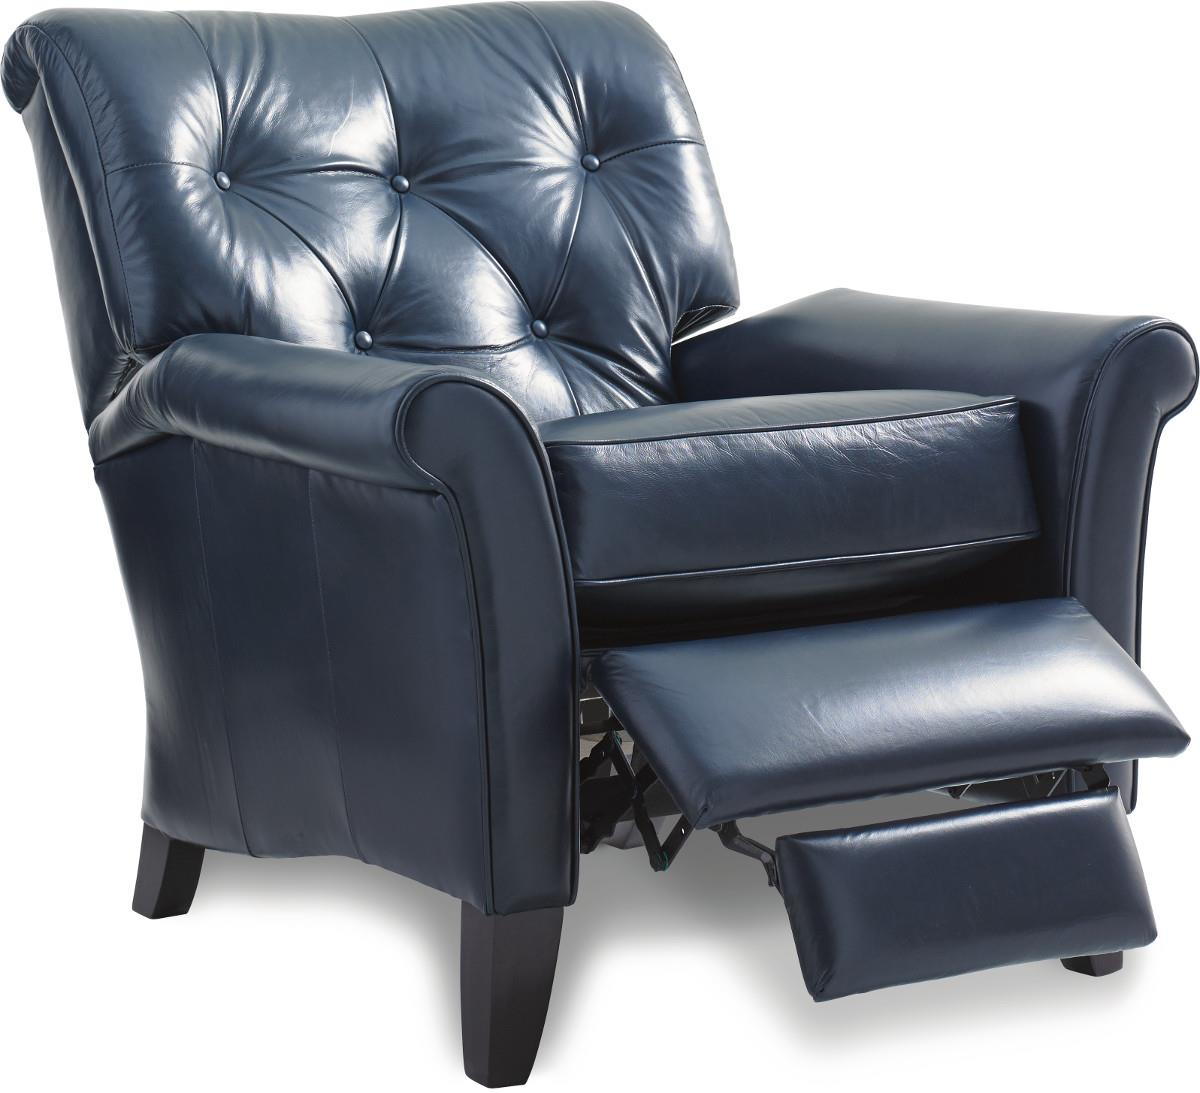 Recliner Side View